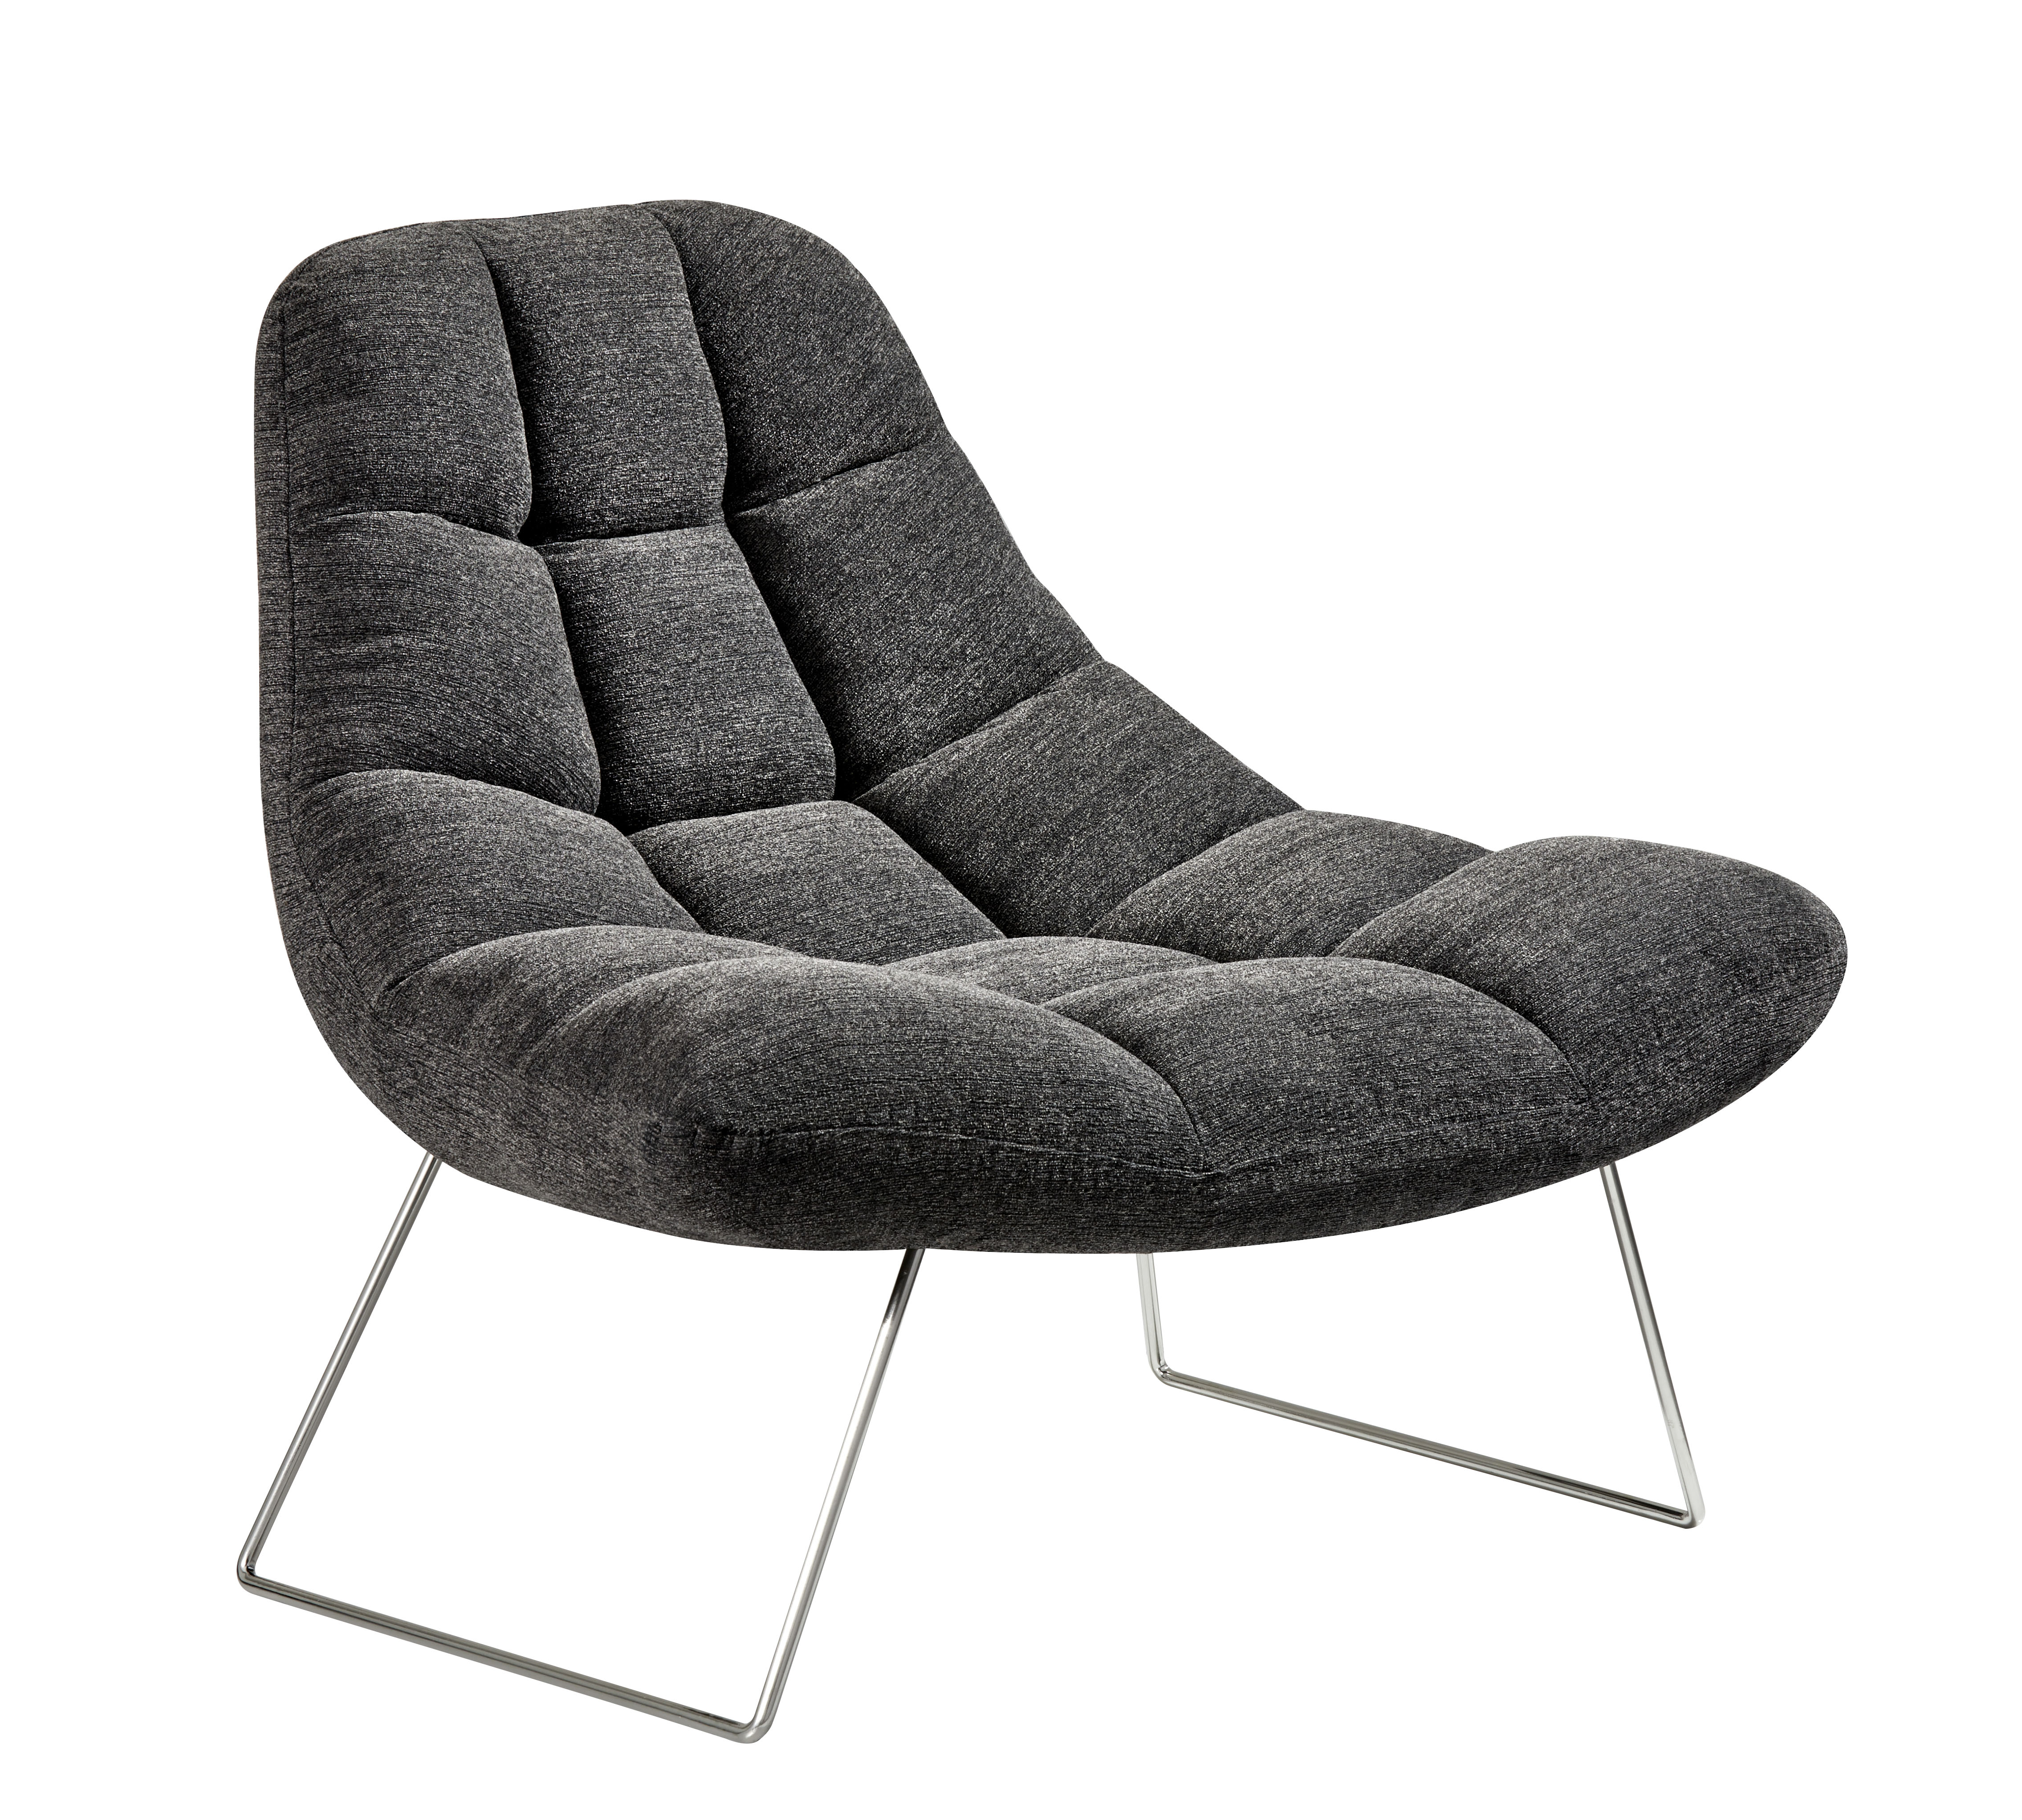 textured charcoal lounging chair